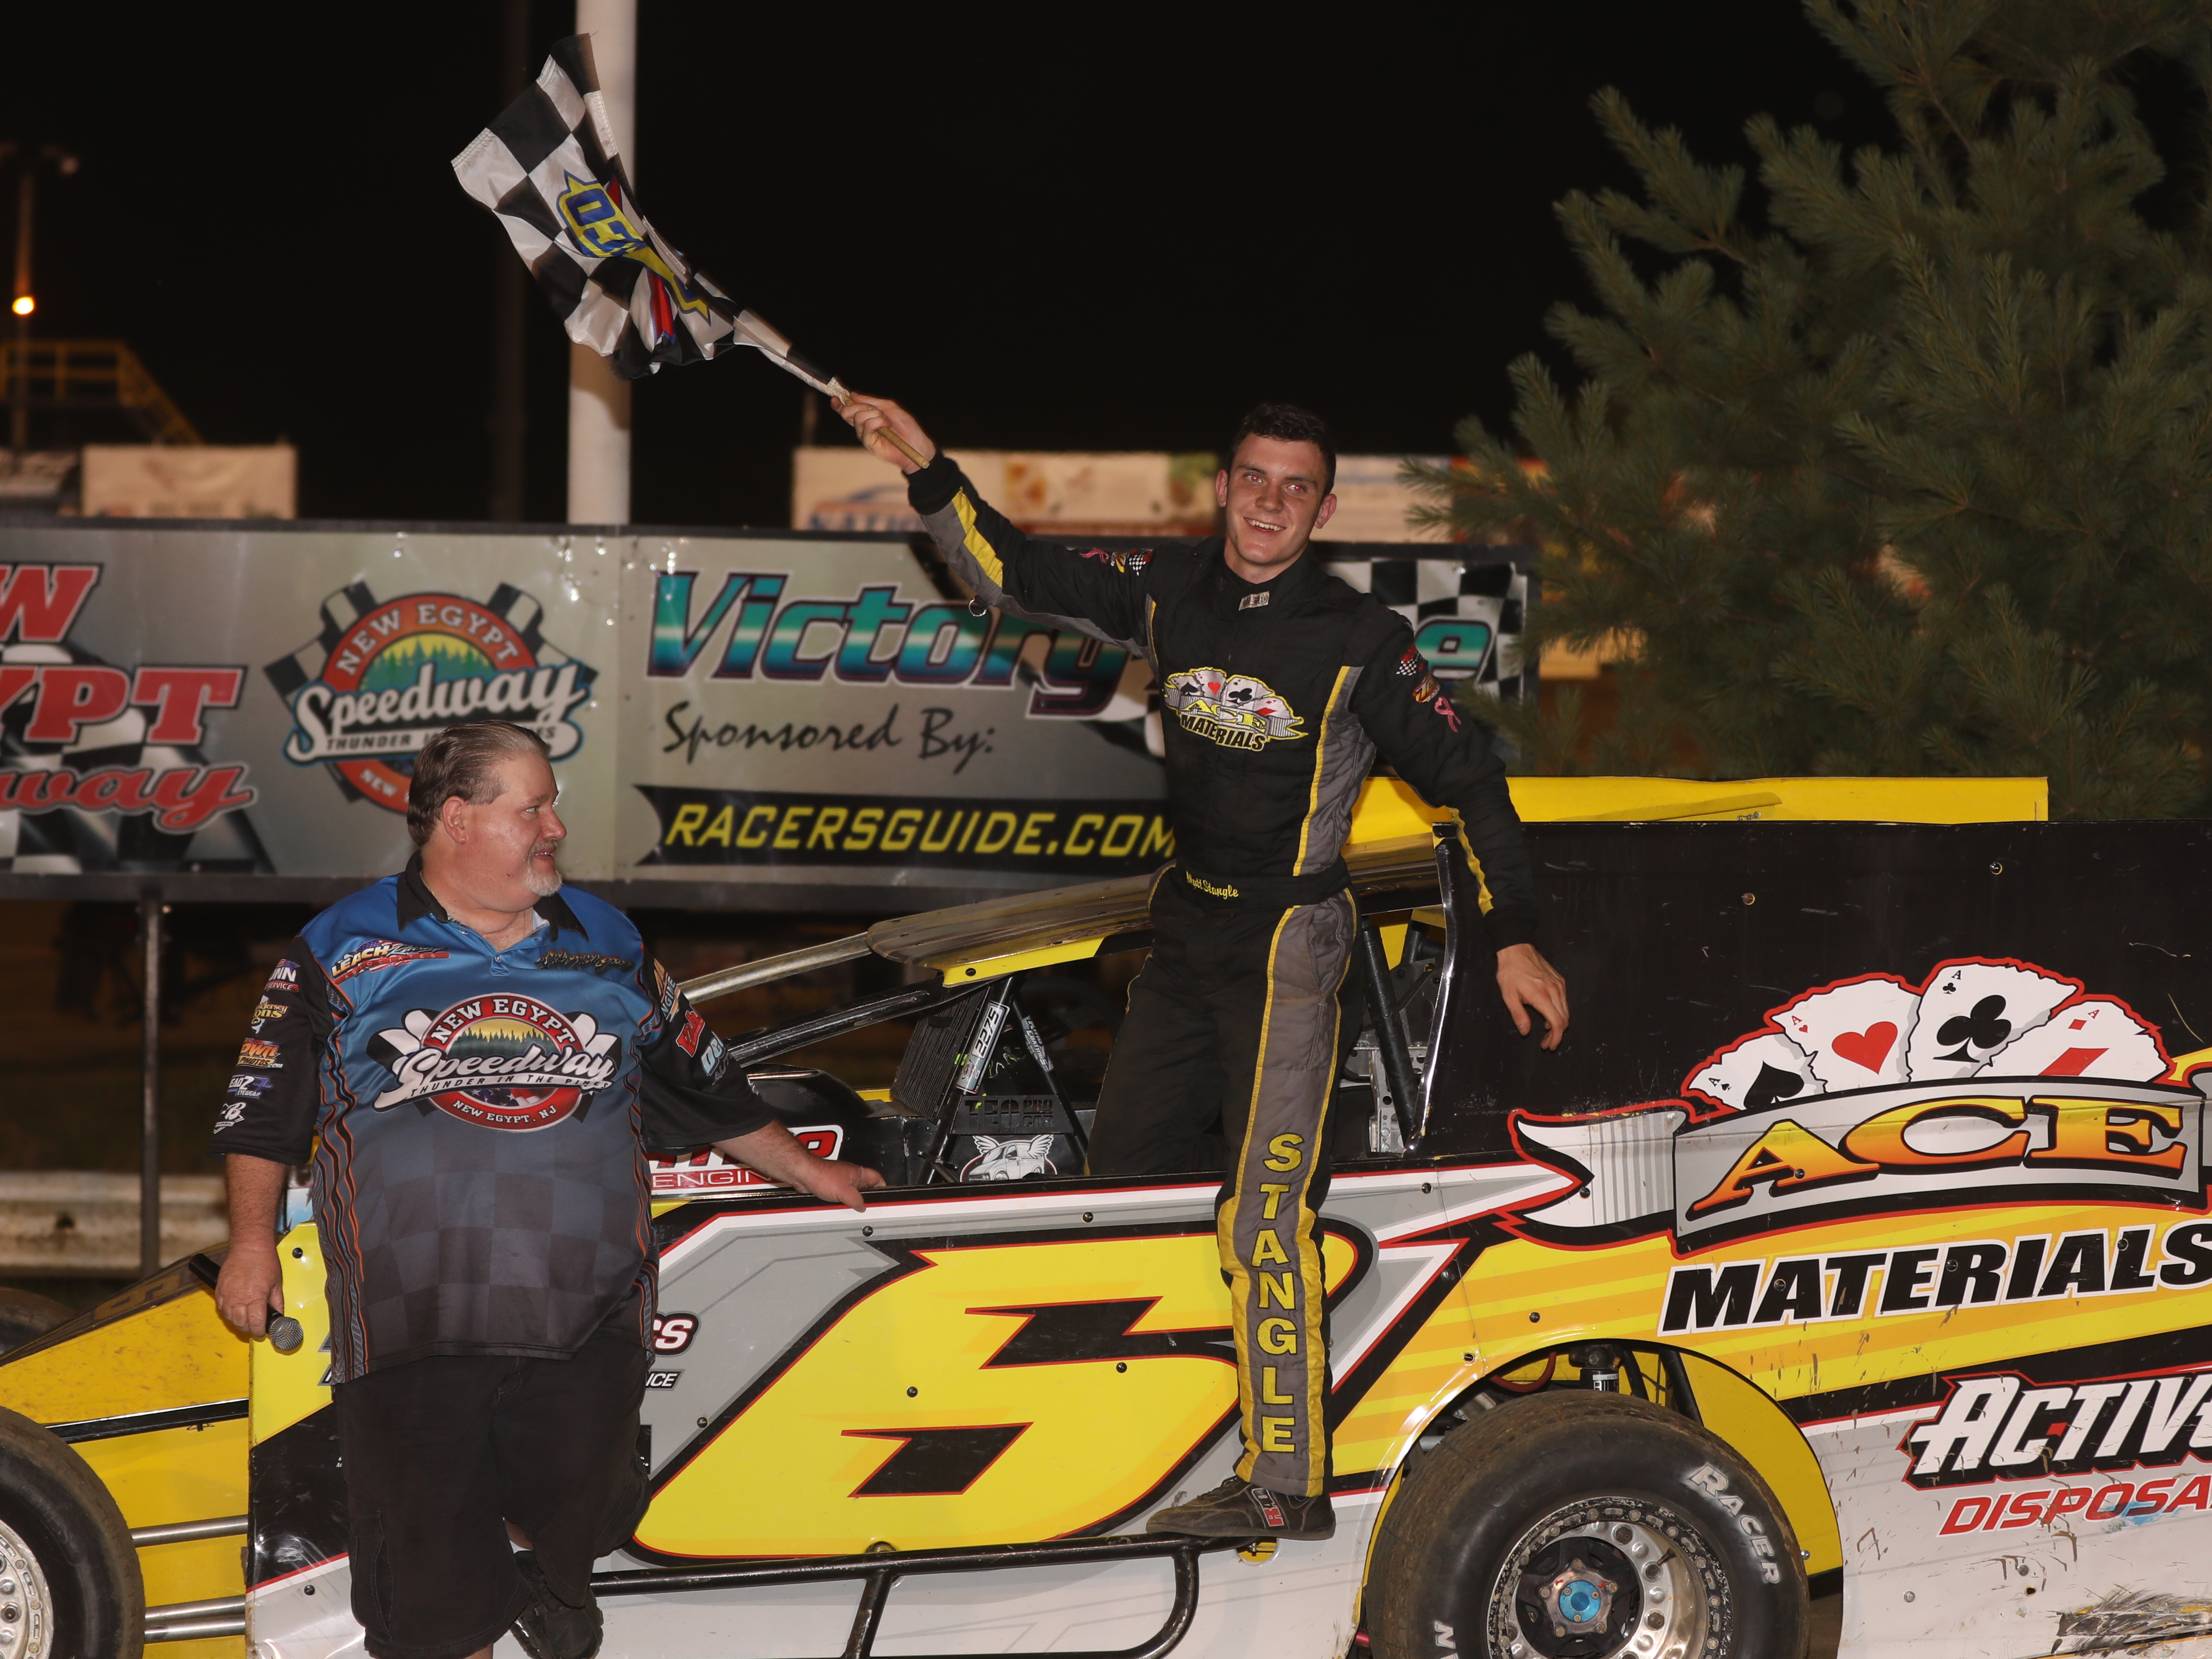 MATT STANGLE WINS HIS FIRST CAREER MODIFIED FEATURE AT NEW EGYPT SPEEDWAY